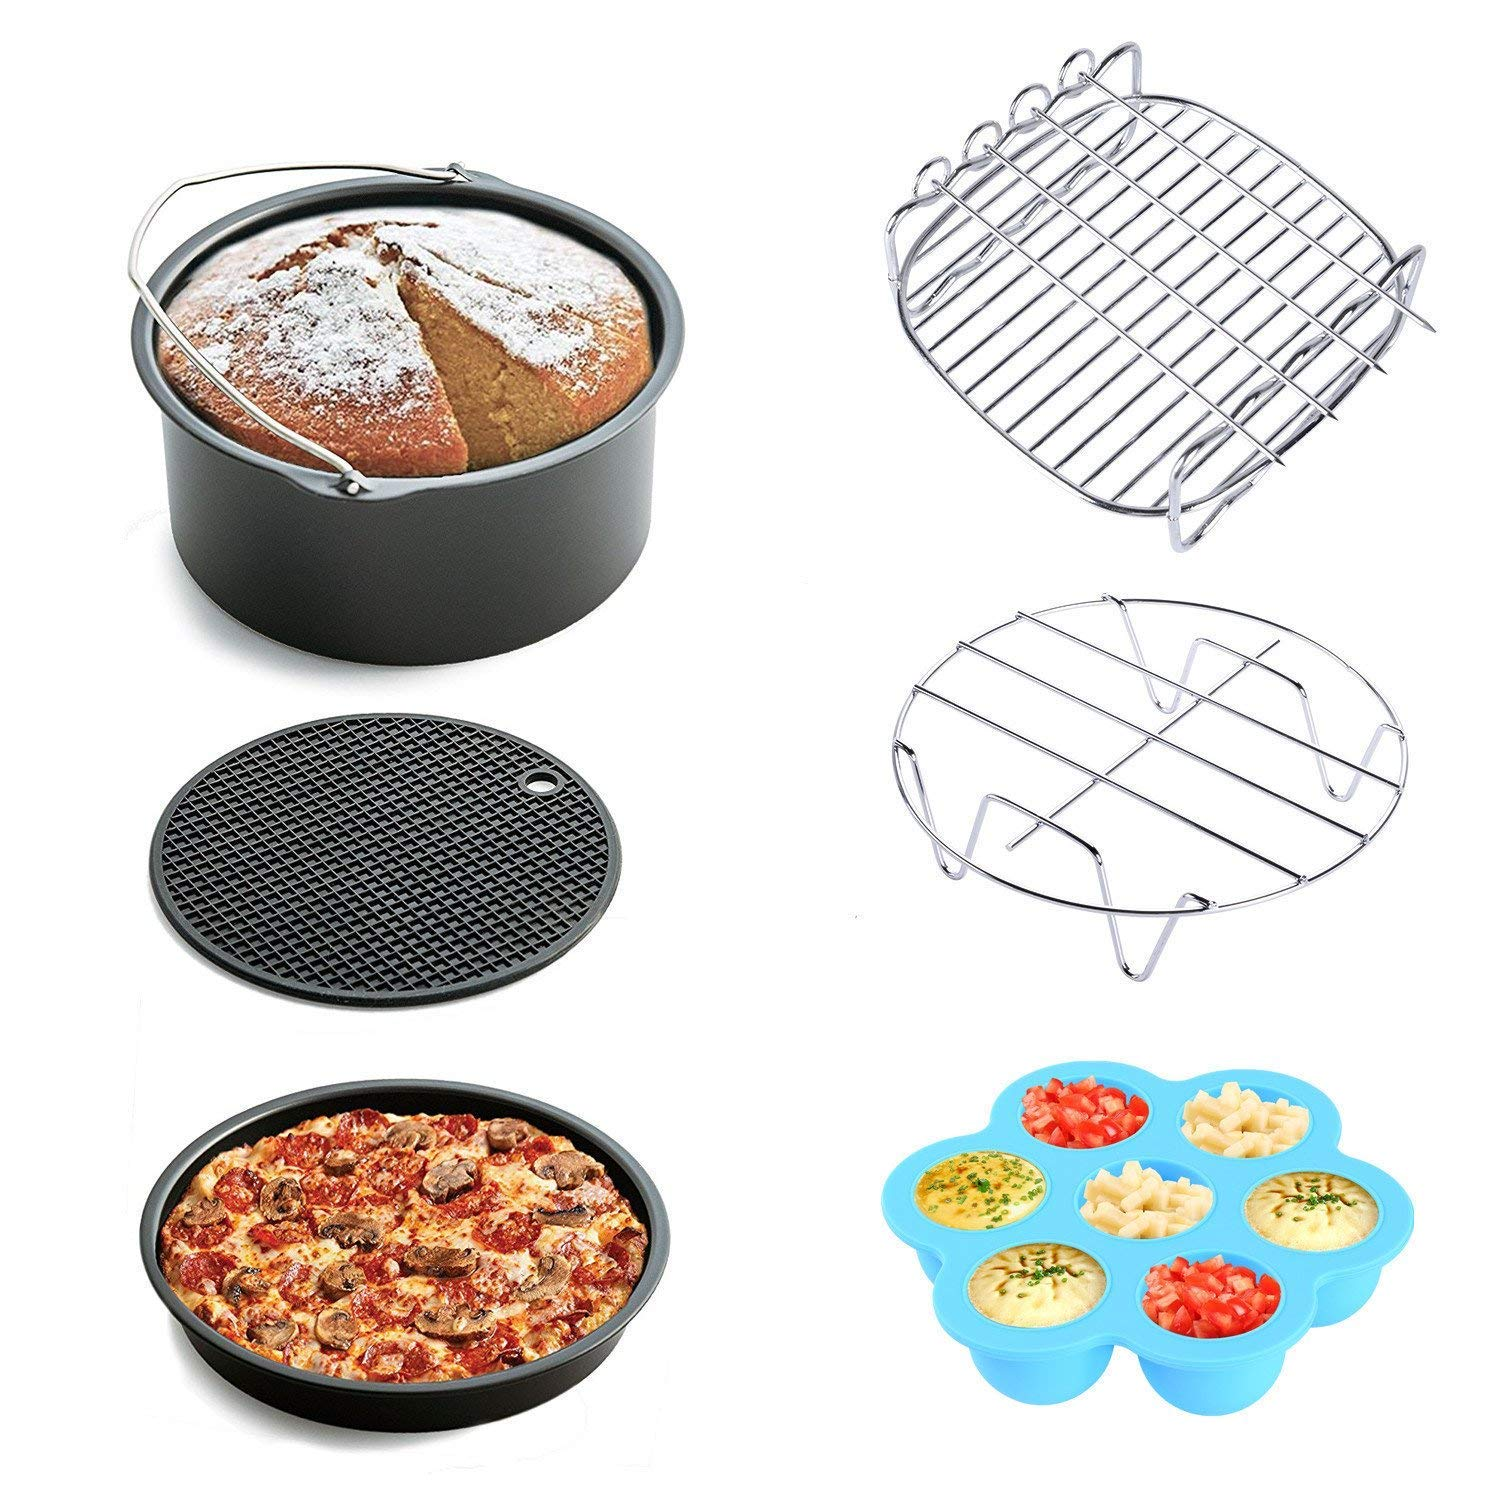 7 Inch Cake pan Silicone Egg Bites Pizza pan, KINDEN 6pcs Air Fryer Accessories, fit All 3.7QT 5.3QT 5.8QT, for Gowise Phillips and Cozyna or More Brand AFA-K07-CA